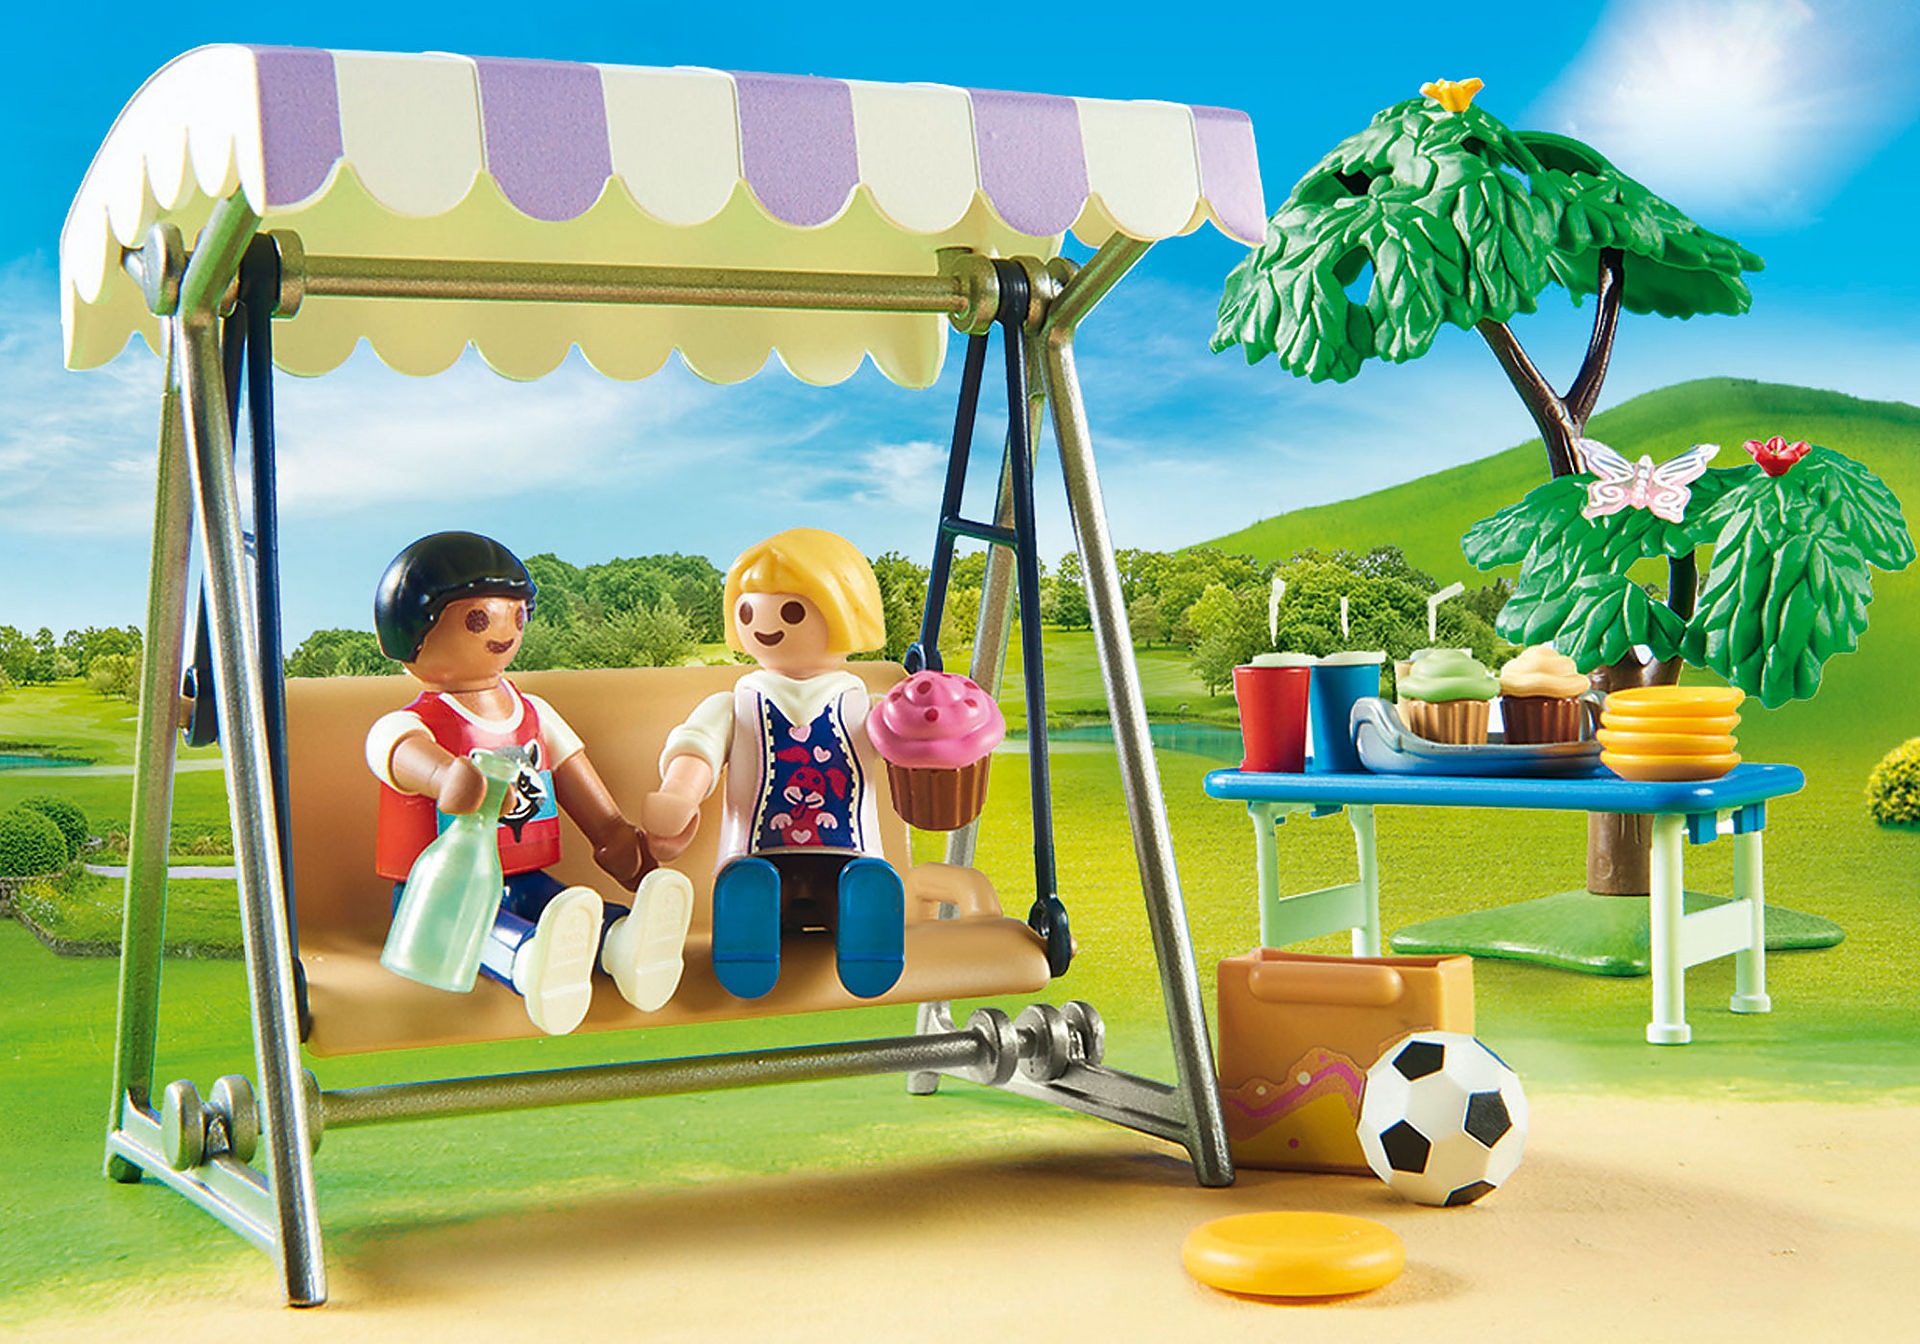 http://media.playmobil.com/i/playmobil/70212_product_extra1/Kinderfeestje met clown